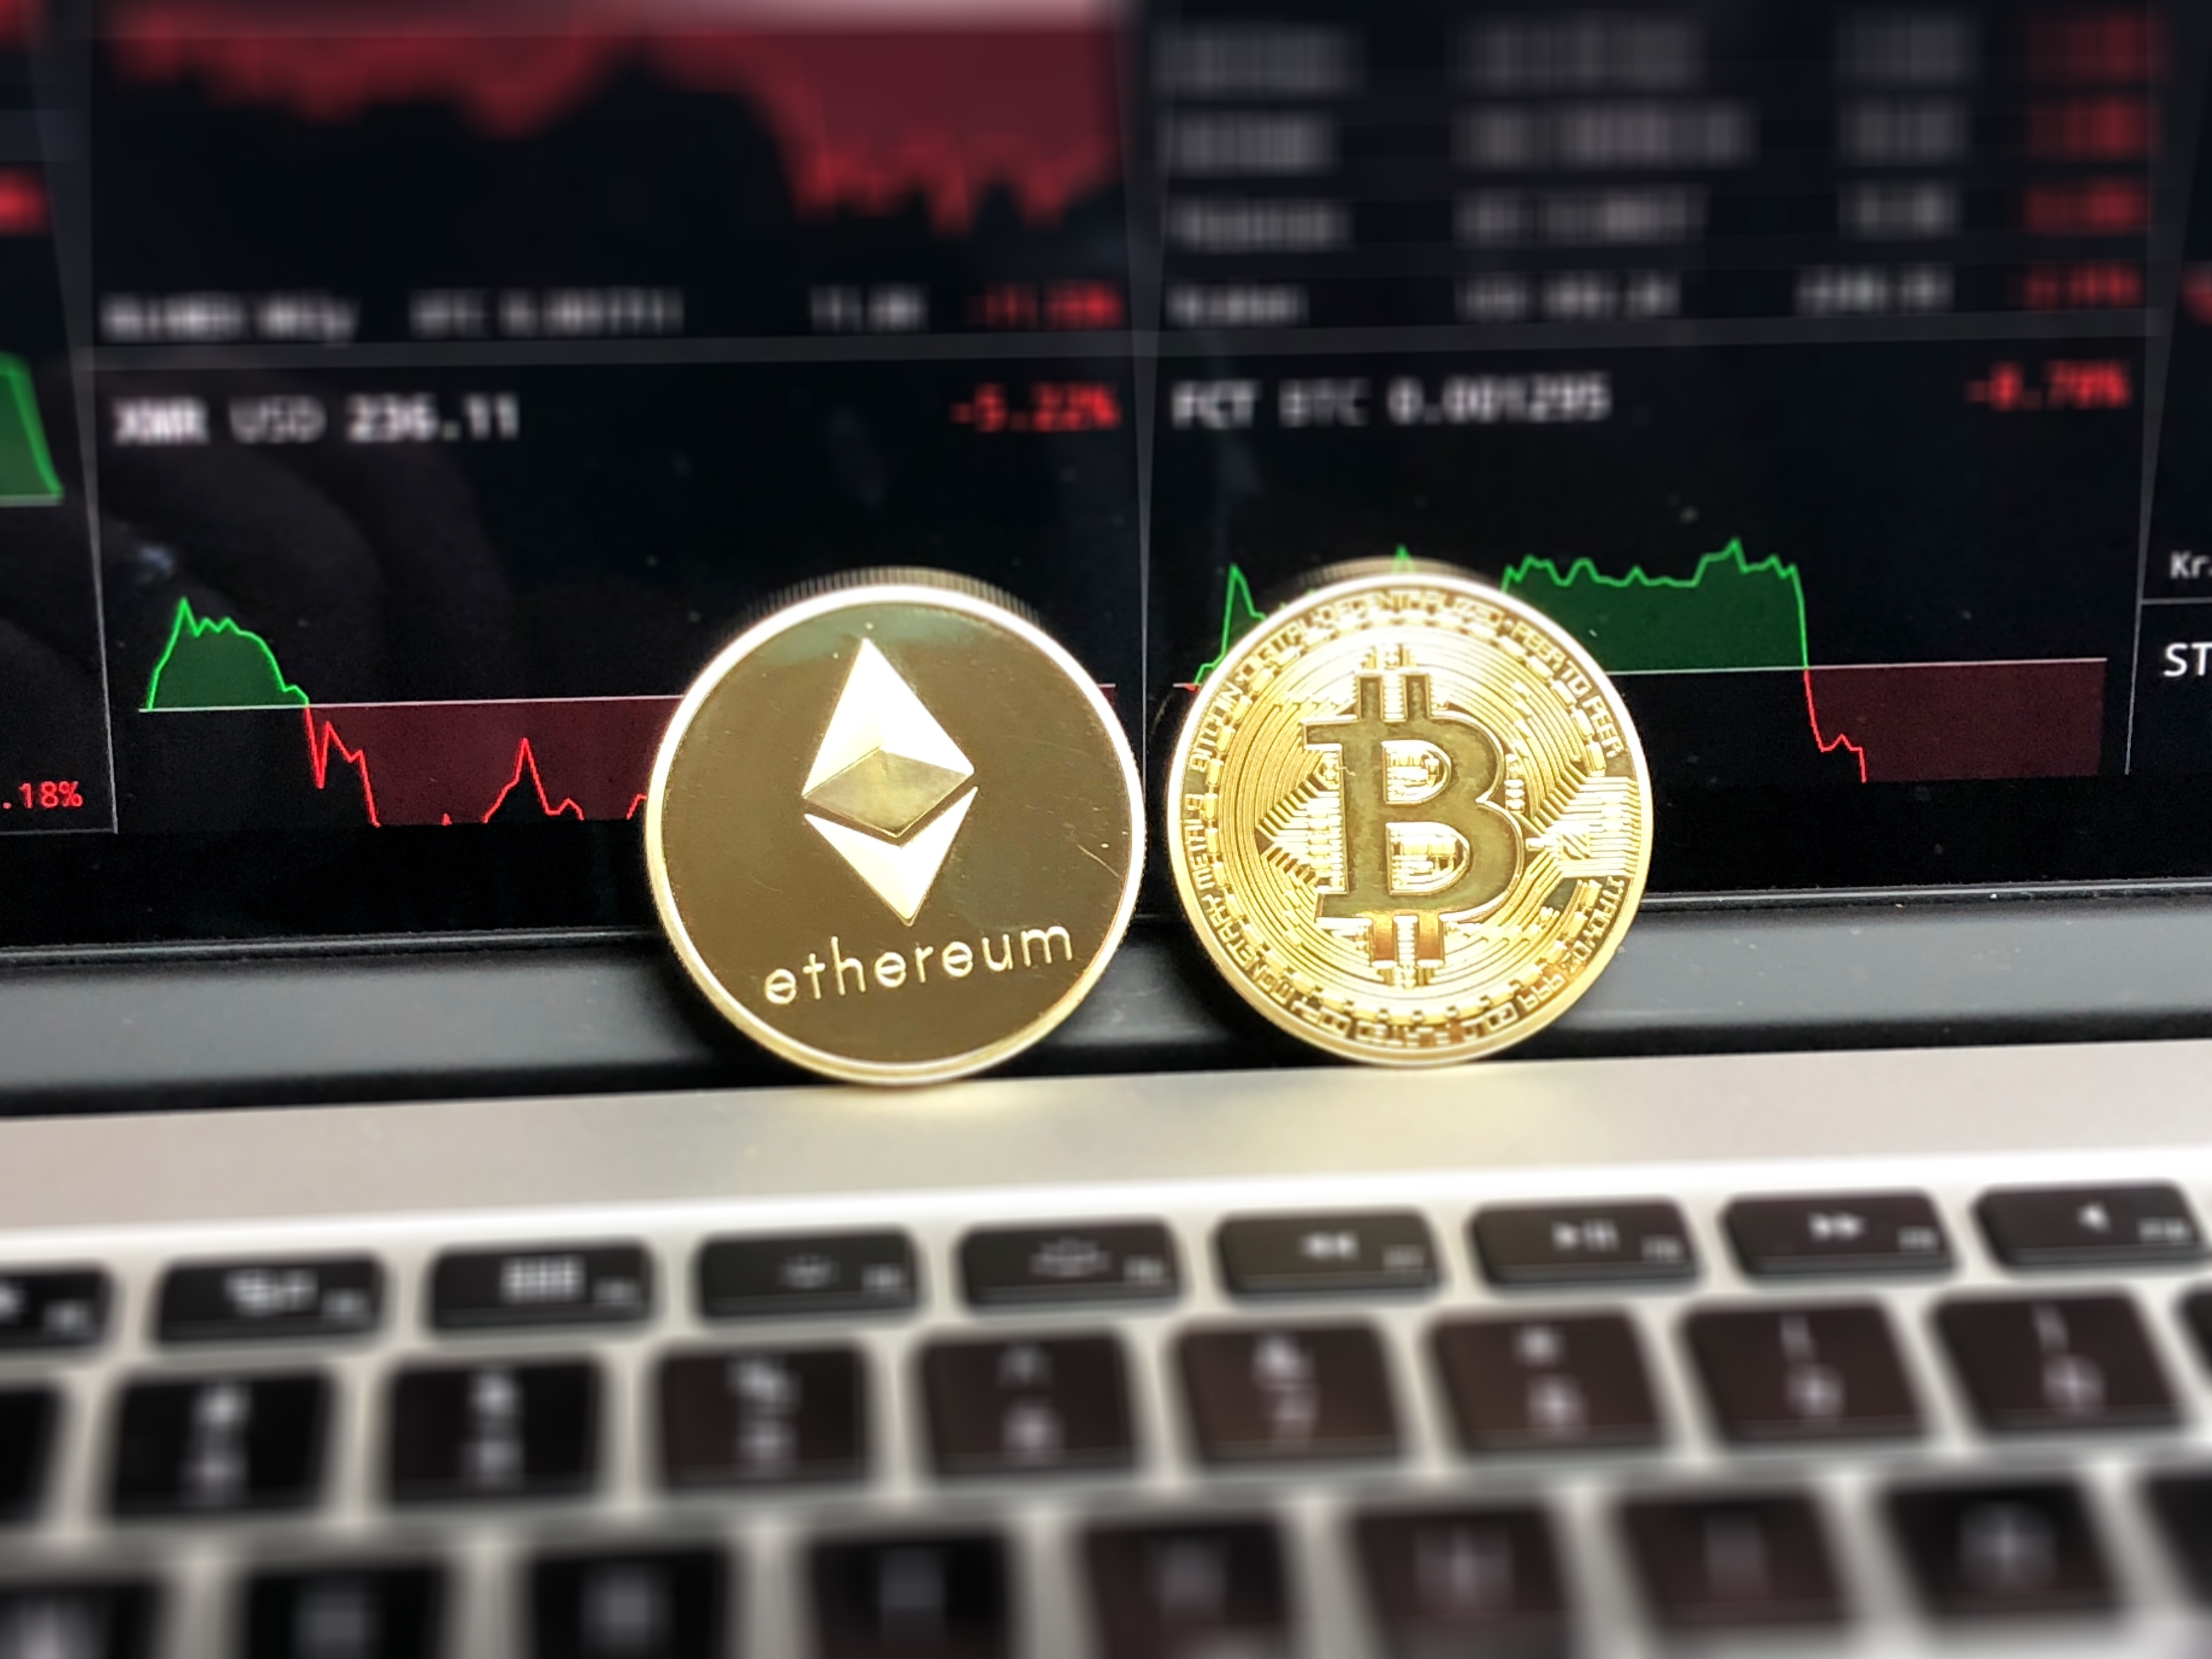 Ethereum and Bitcoin Emblems, Finance, Technology, Screen, Round, HQ Photo